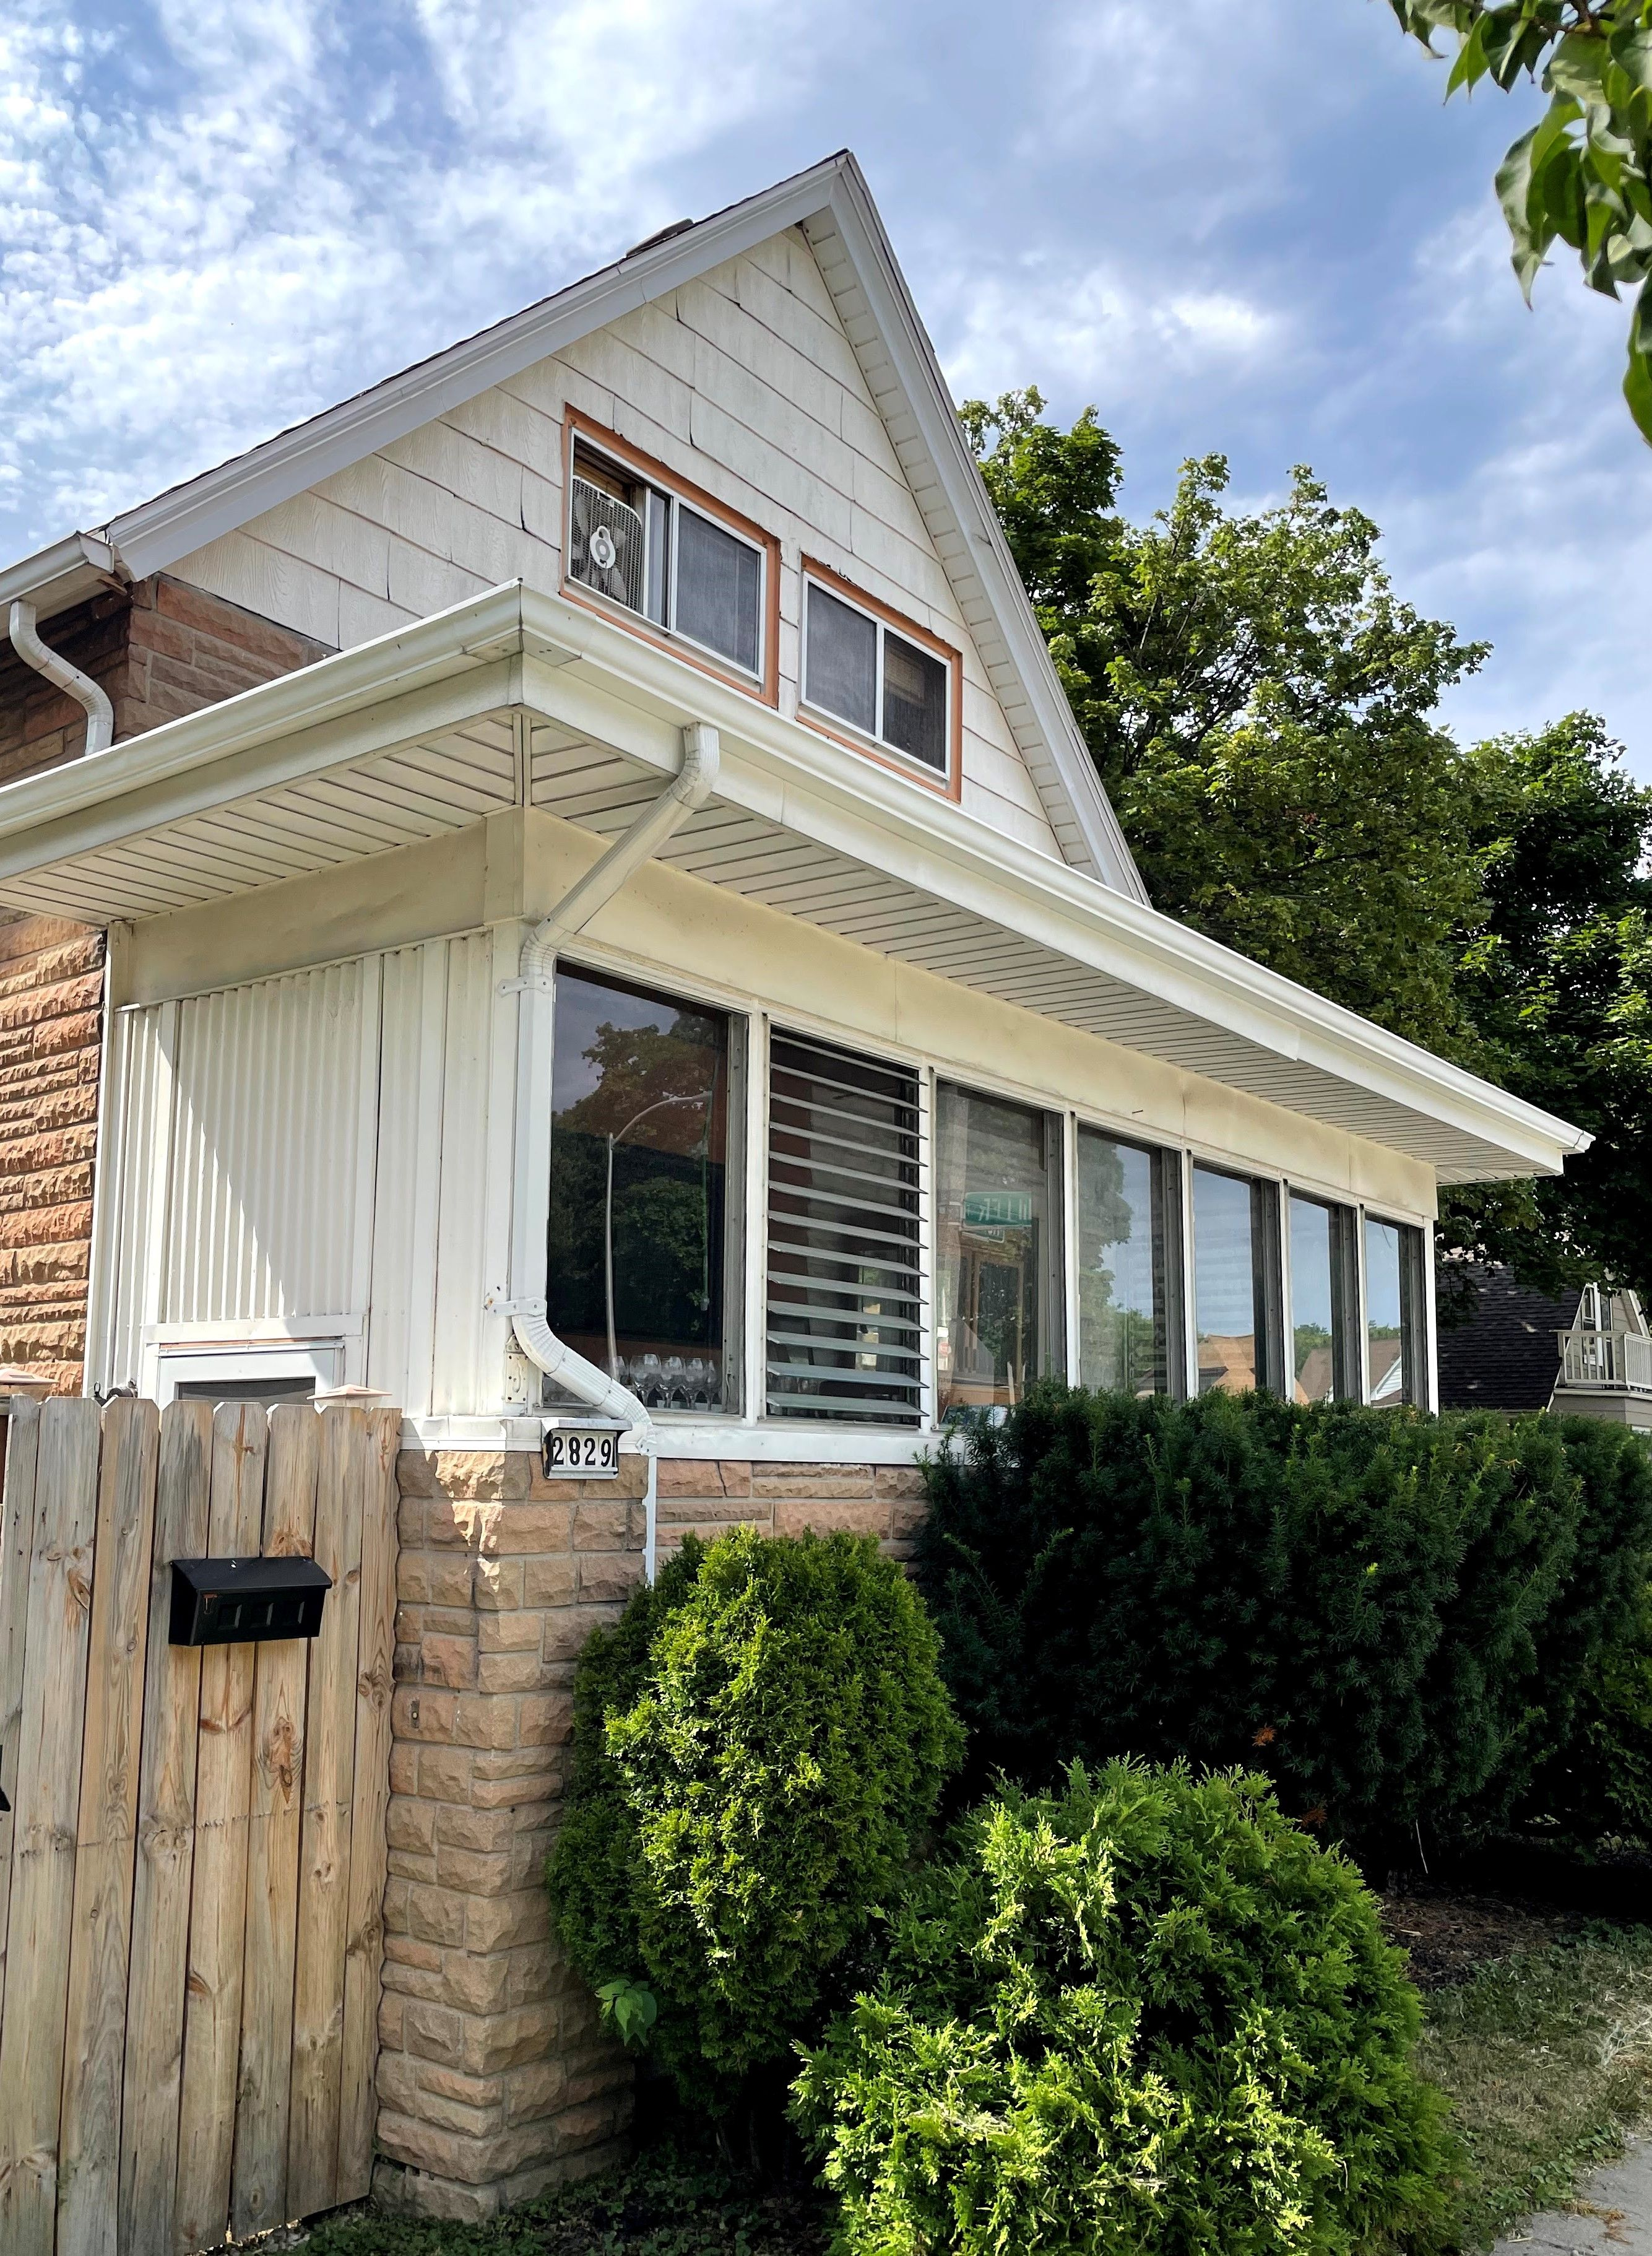 2829 S Howell Ave., Milwaukee, WI